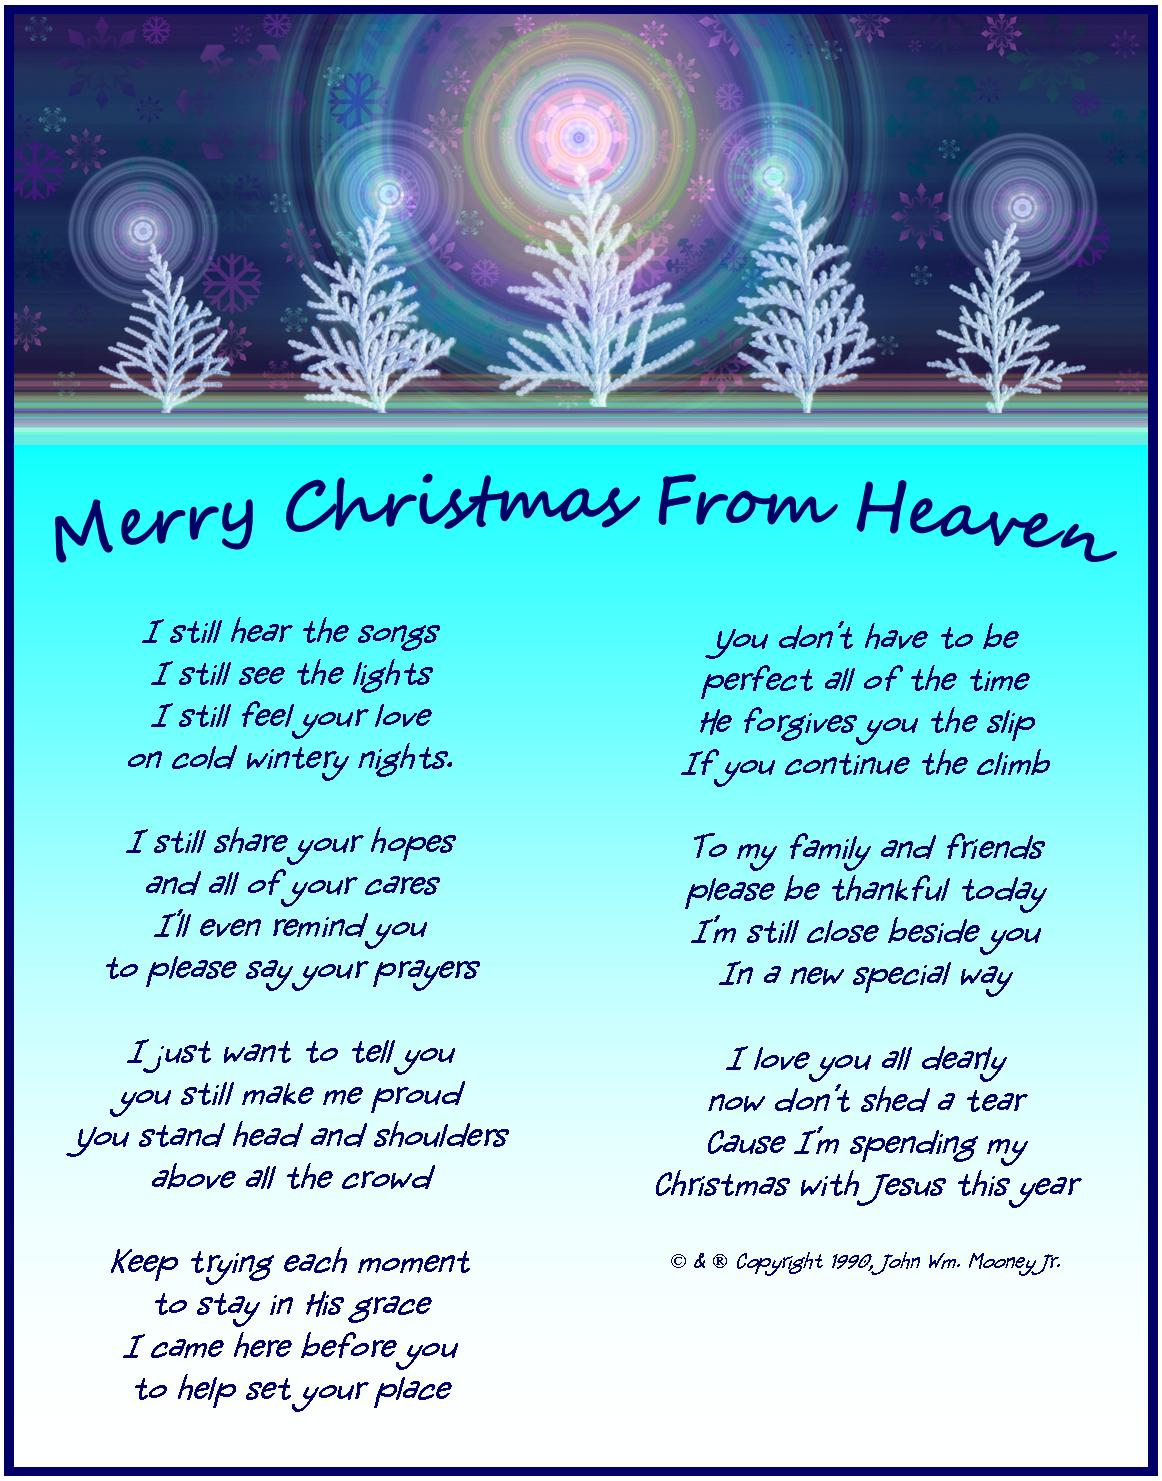 Father passed away quotes links jpg 1162x1481 Merry christmas heaven mom